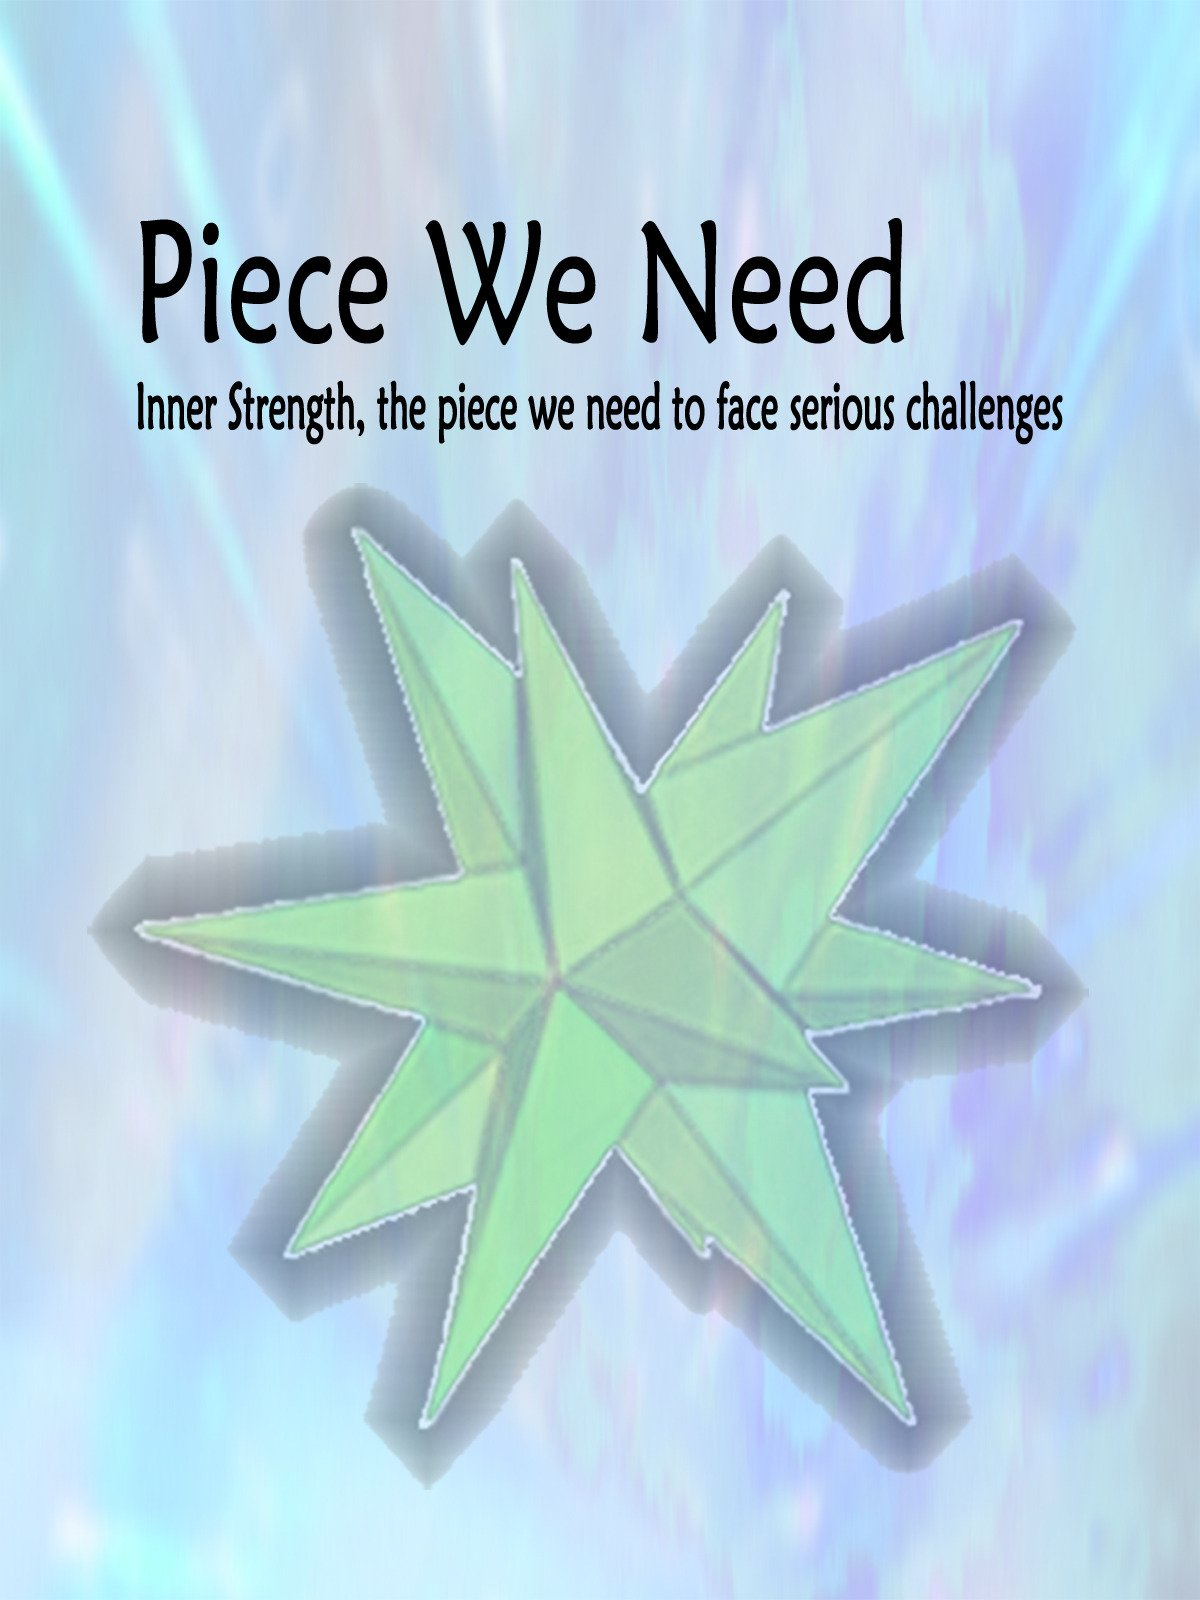 Piece We Need: inner strength, the piece we need to face serious challenges